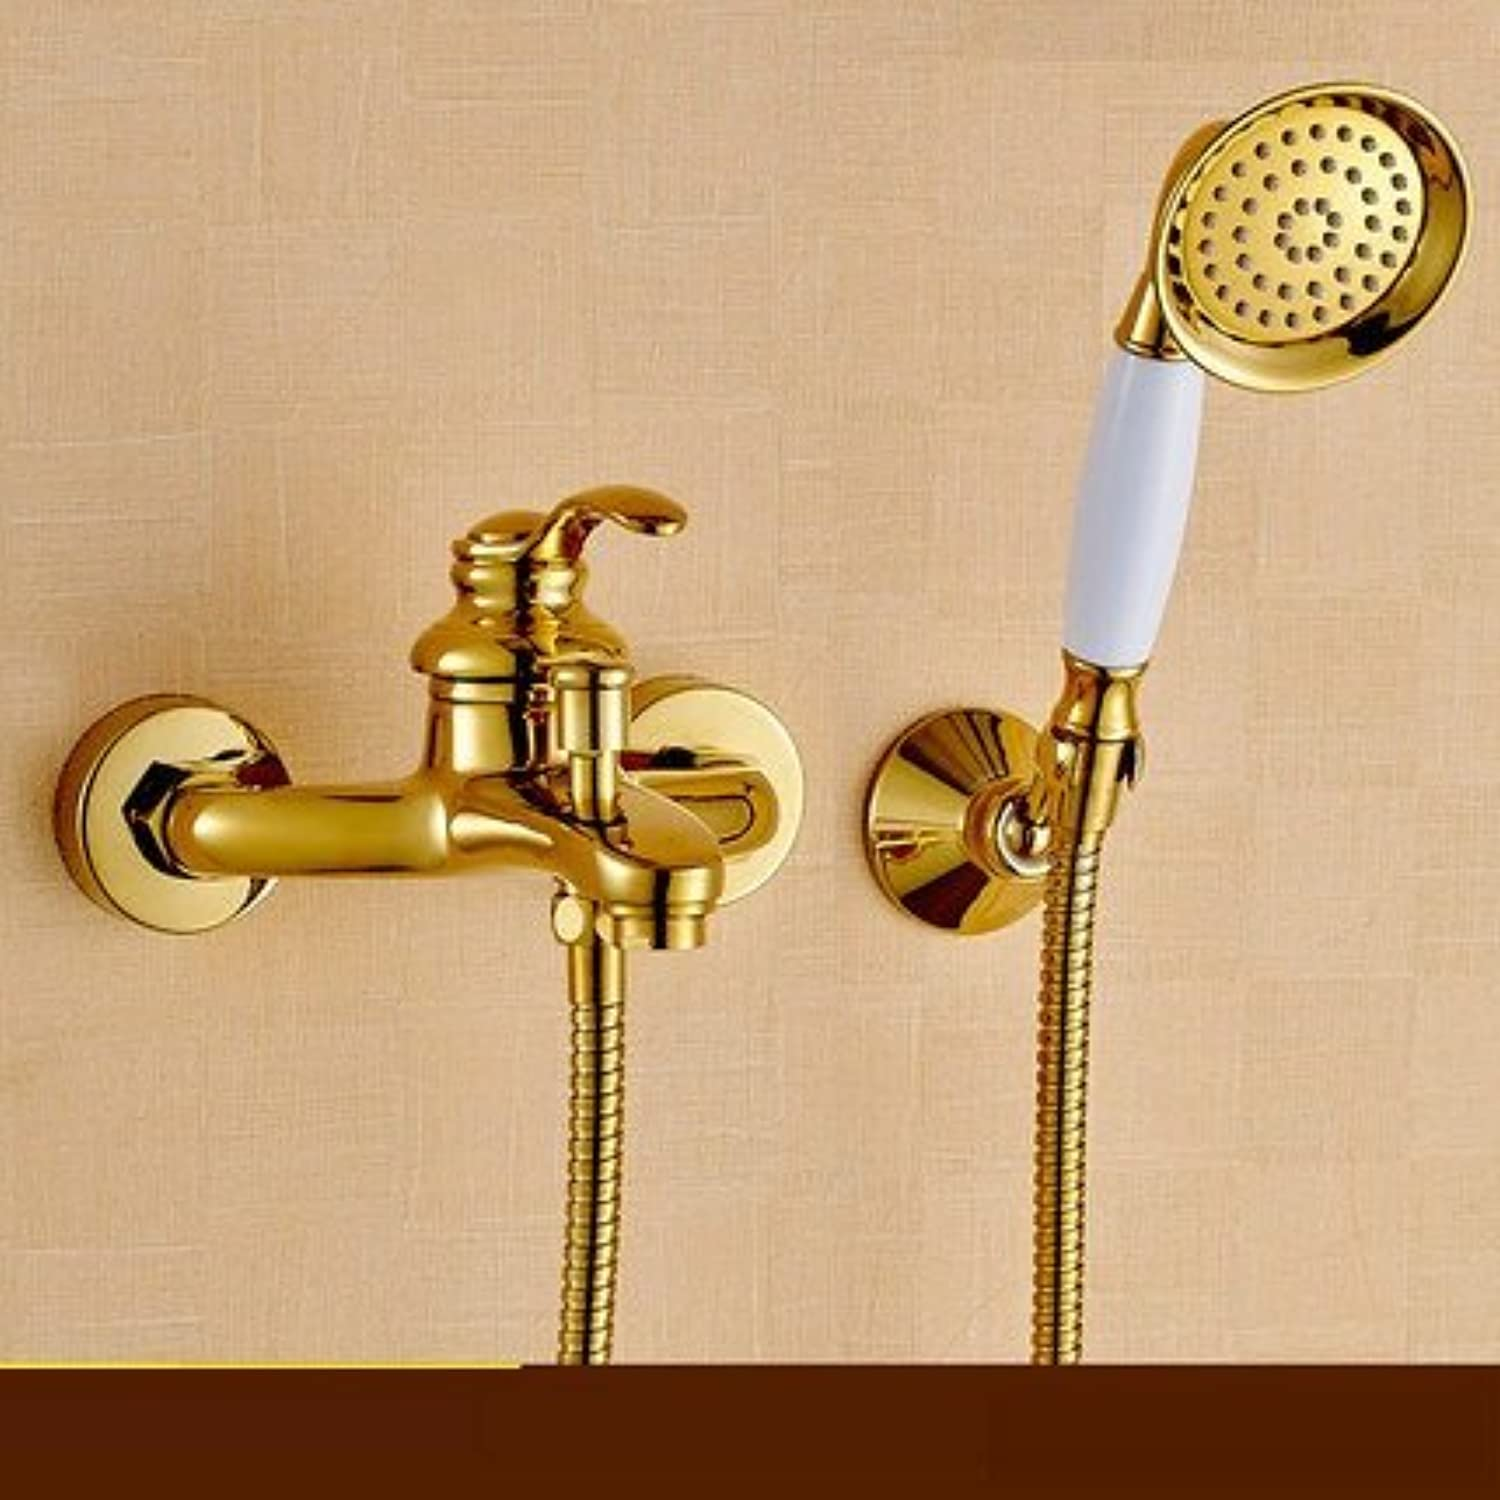 Bijjaladeva Antique Bathroom Sink Vessel Faucet Basin Mixer Tap Hand held shower gold plated shower kit full copper heated wall mounted faucets